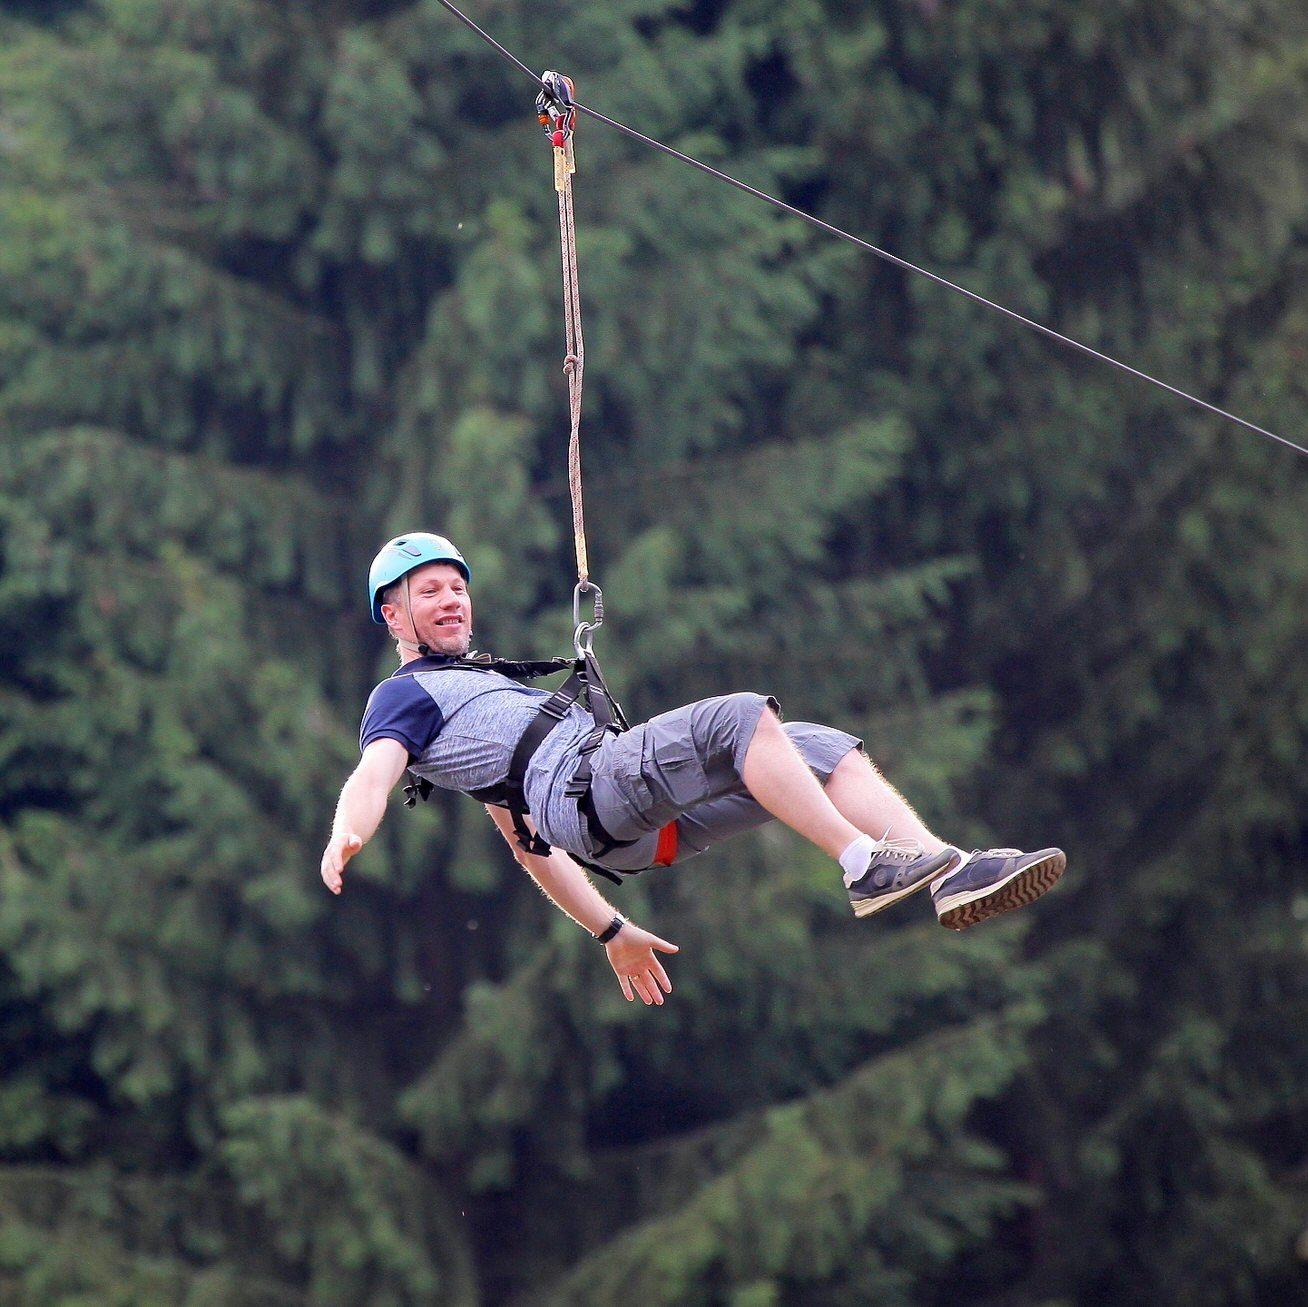 Do you adore the power of adrenaline? So ZipLine is the right attraction for you.